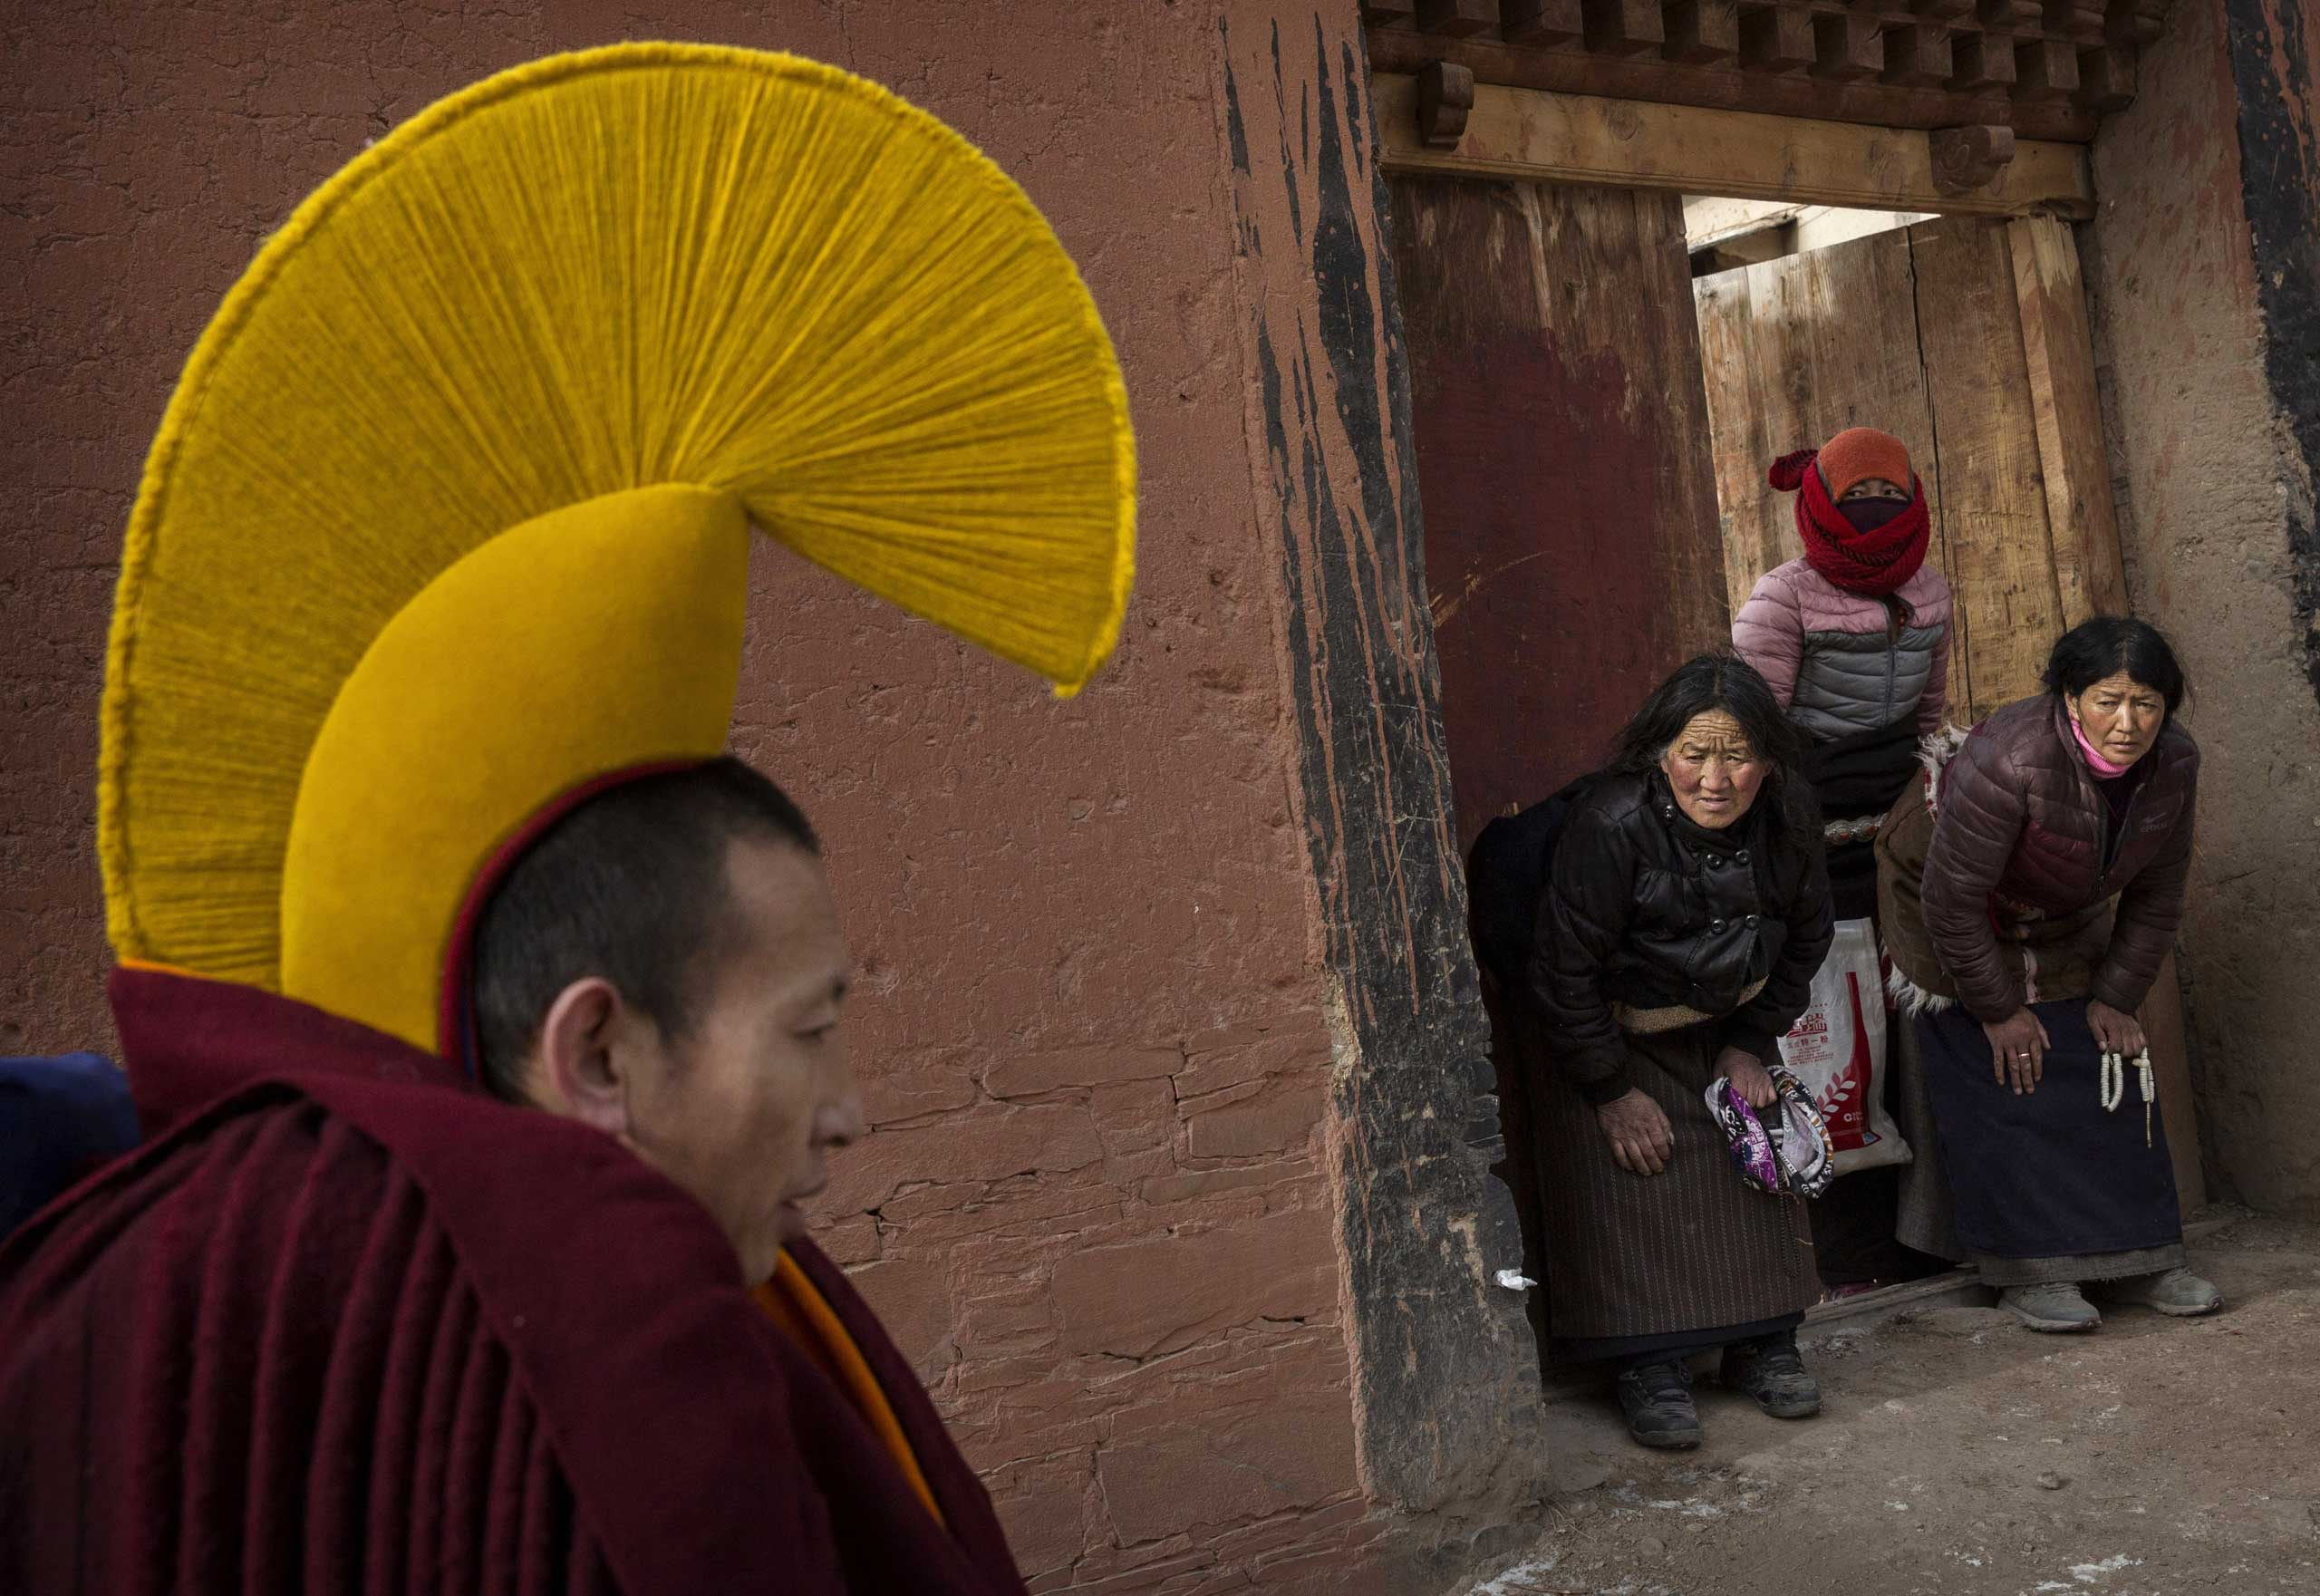 Devotees bow to a passing Tibetan Buddhist monk on his way to take part in a special prayer during Monlam or the Great Prayer rituals on March 5, 2015 at the Labrang Monastery.